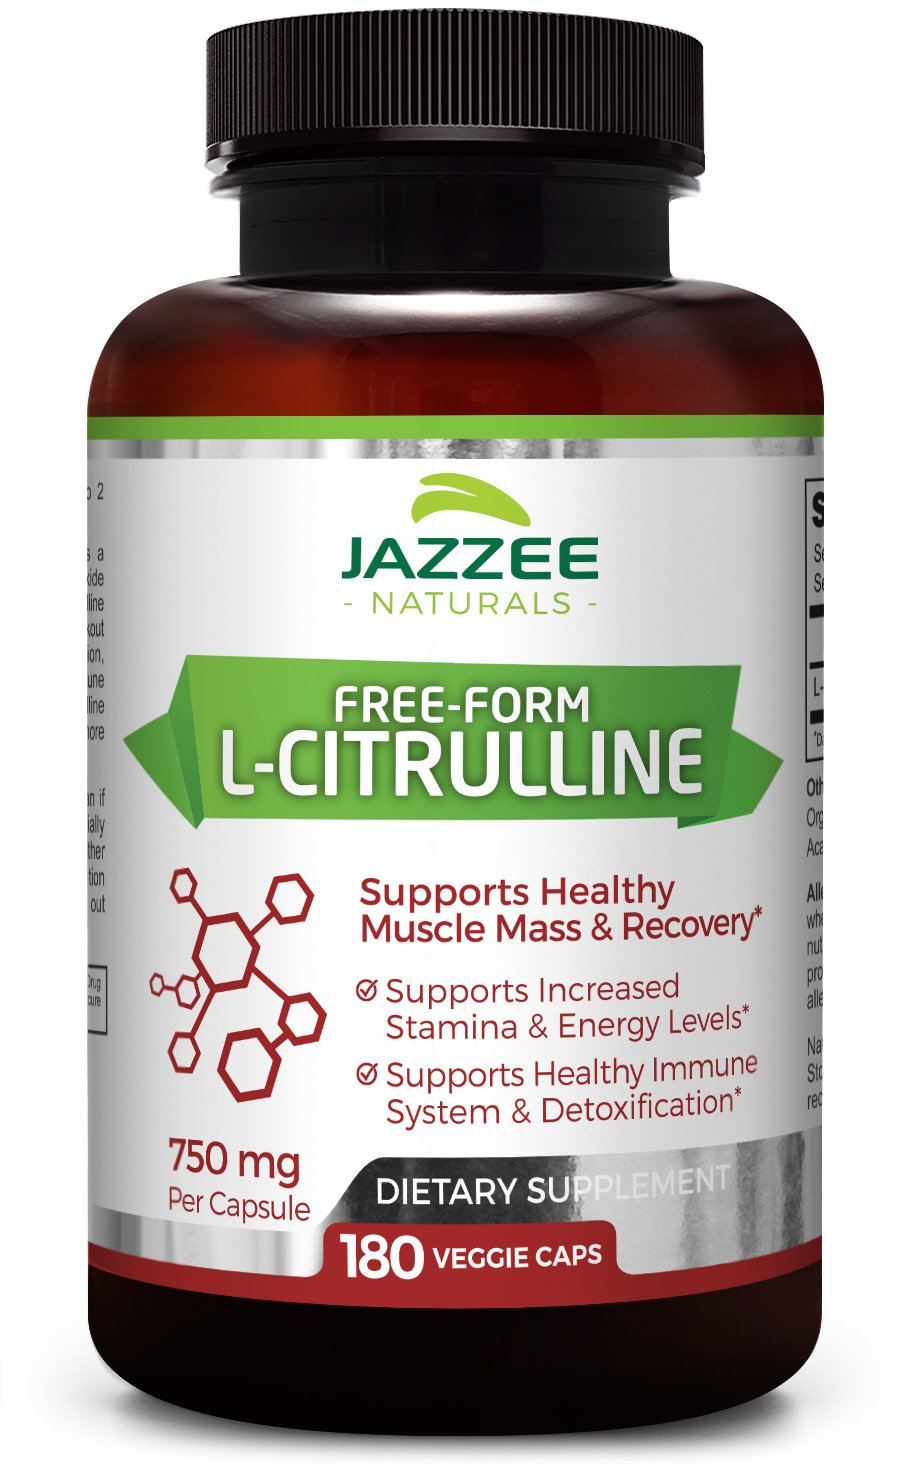 Free-Form L-Citrulline Malate | 750 mg | 180 Veggie Capsules | up to 6-Month Supply | Vegetarian/Vegan | Stabilized Organically | Supports Endurance, Stamina, and Energy